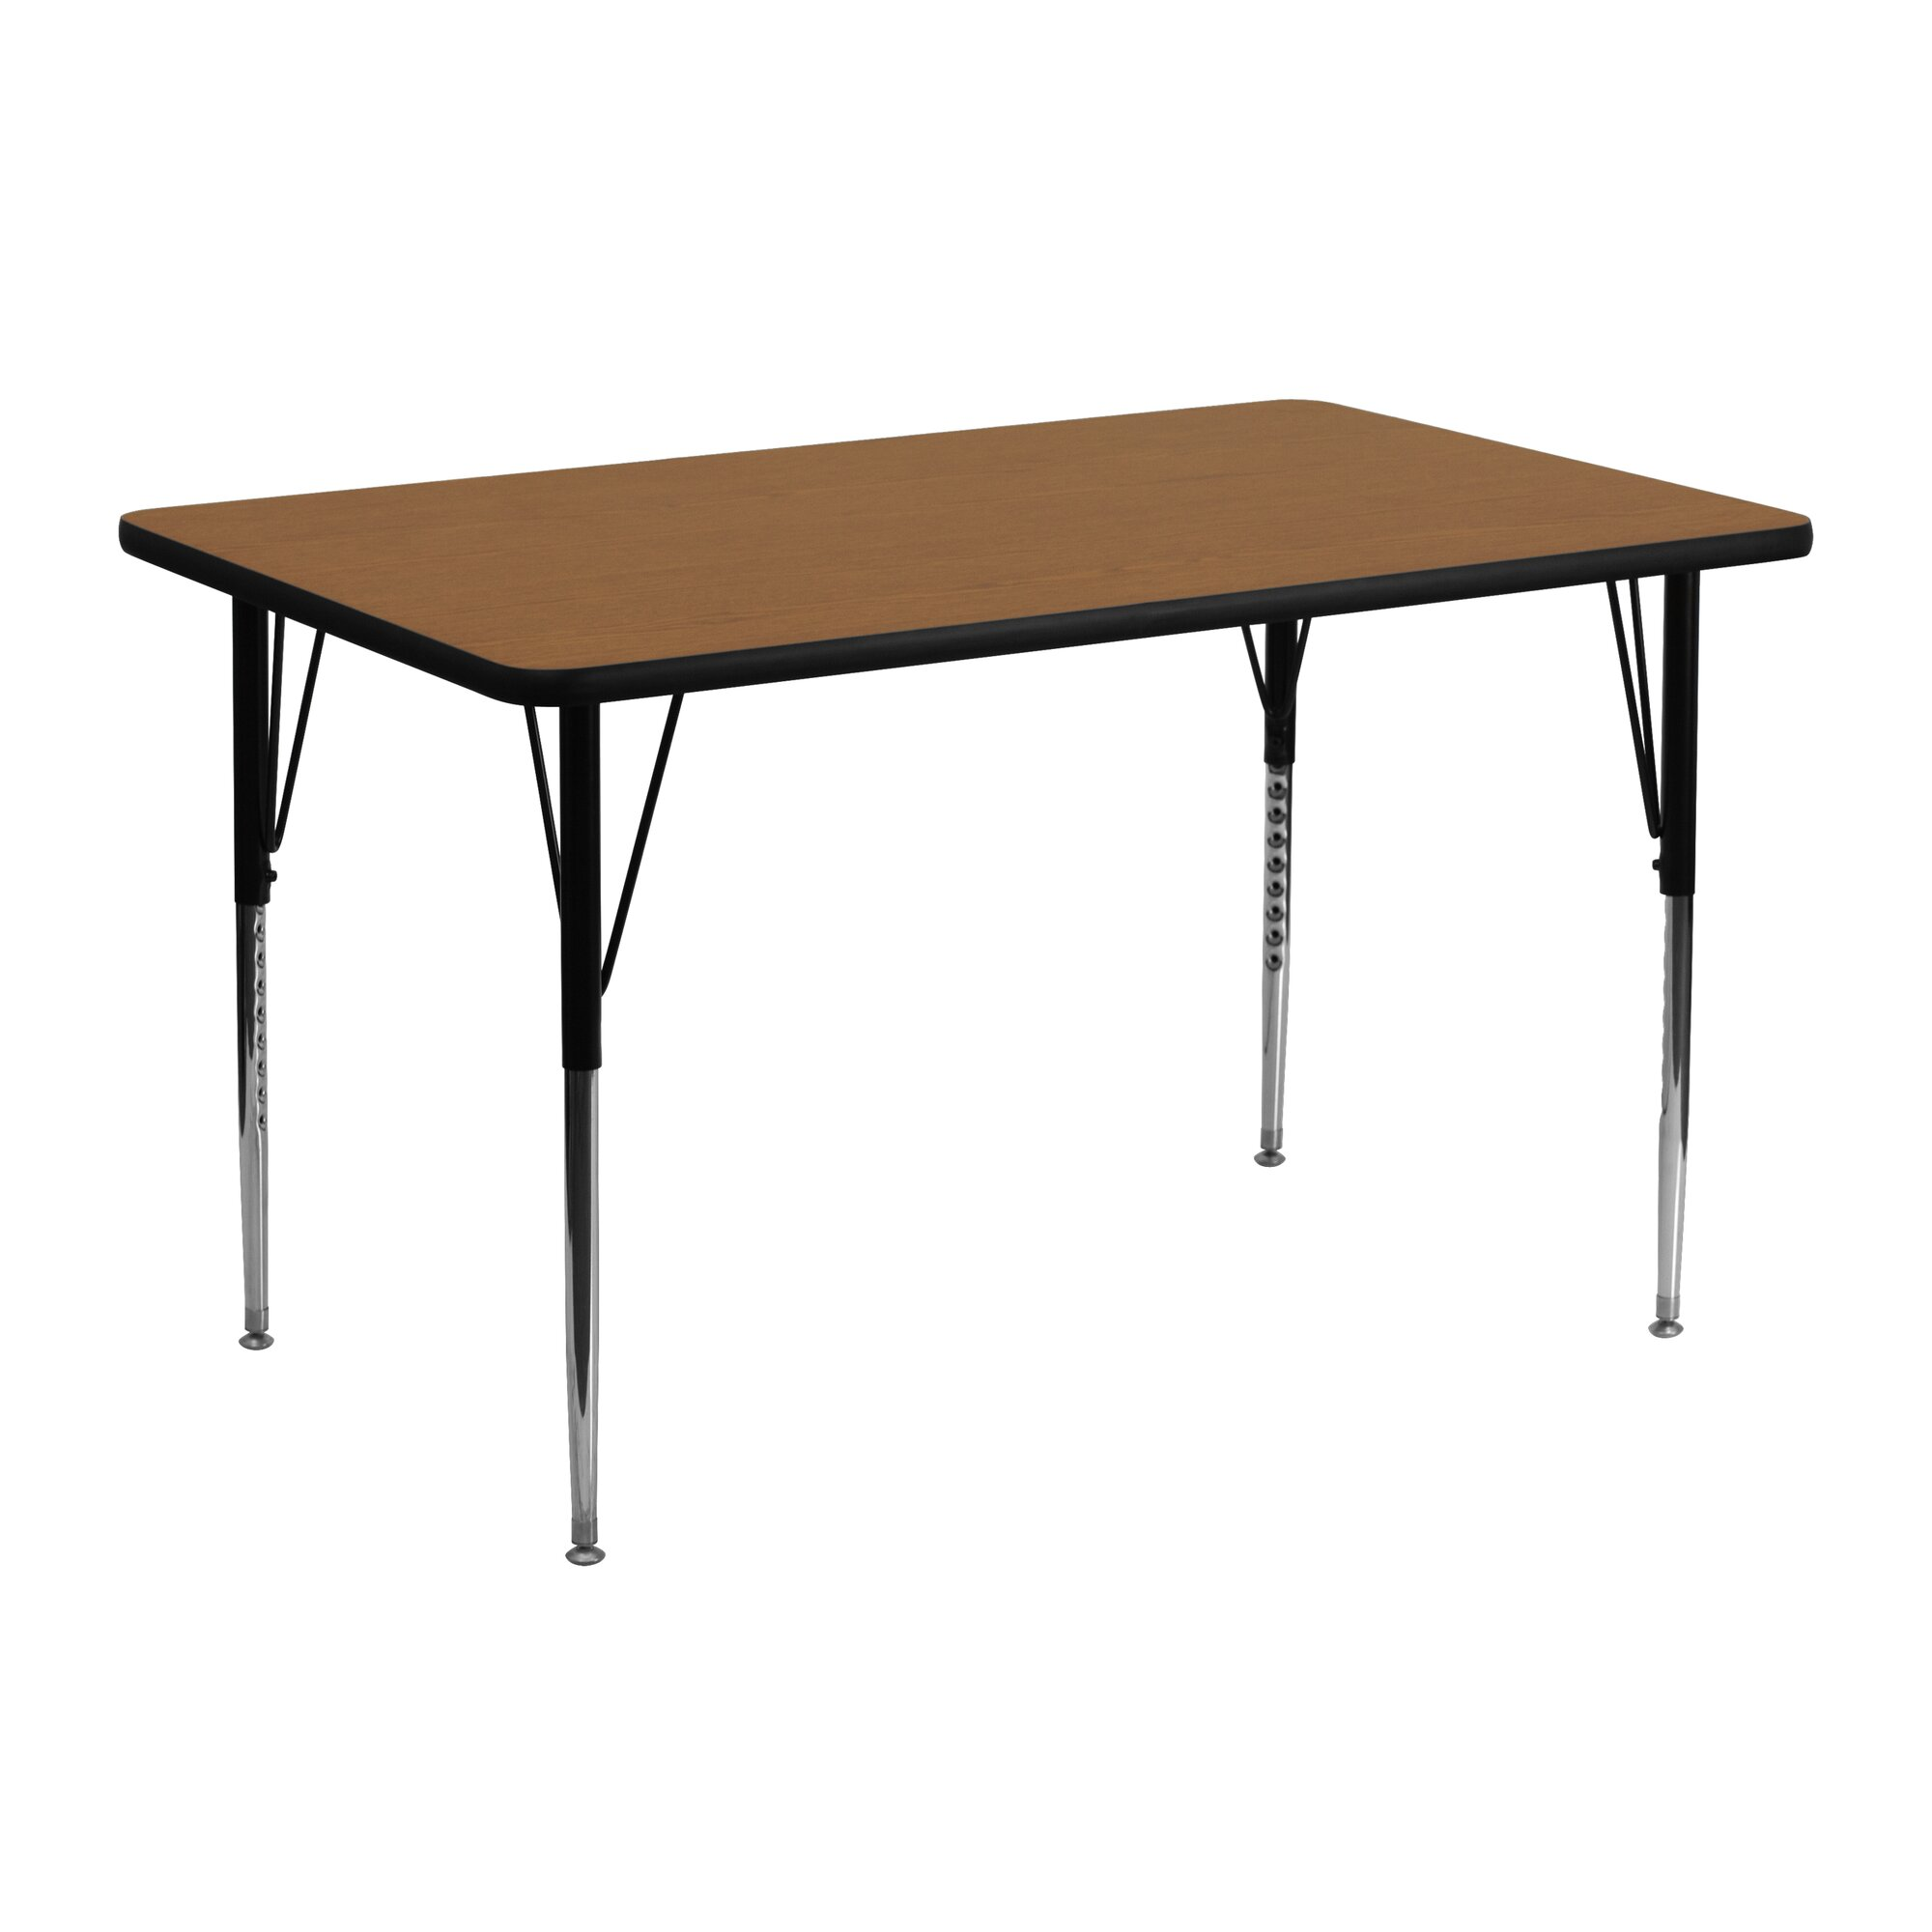 Flash furniture 48 x 24 rectangular activity table for Table x reviews